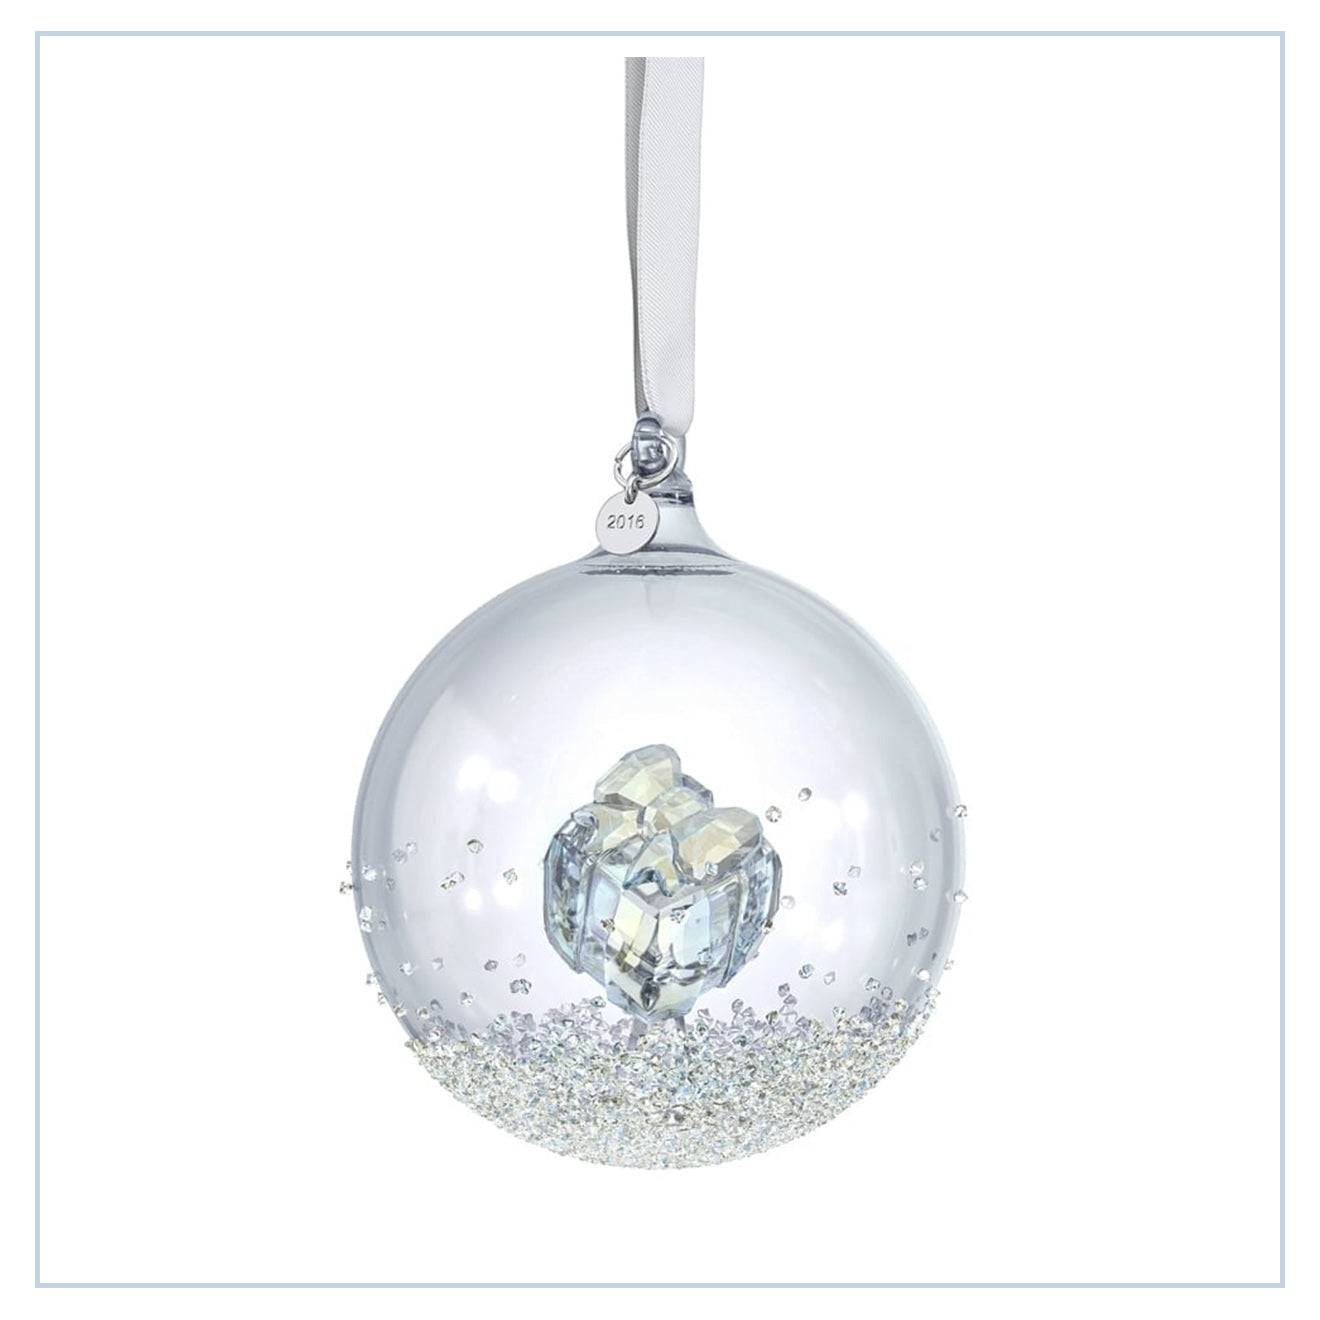 Top 10 luxury christmas ornaments martyn white designs for How to design a christmas ornament